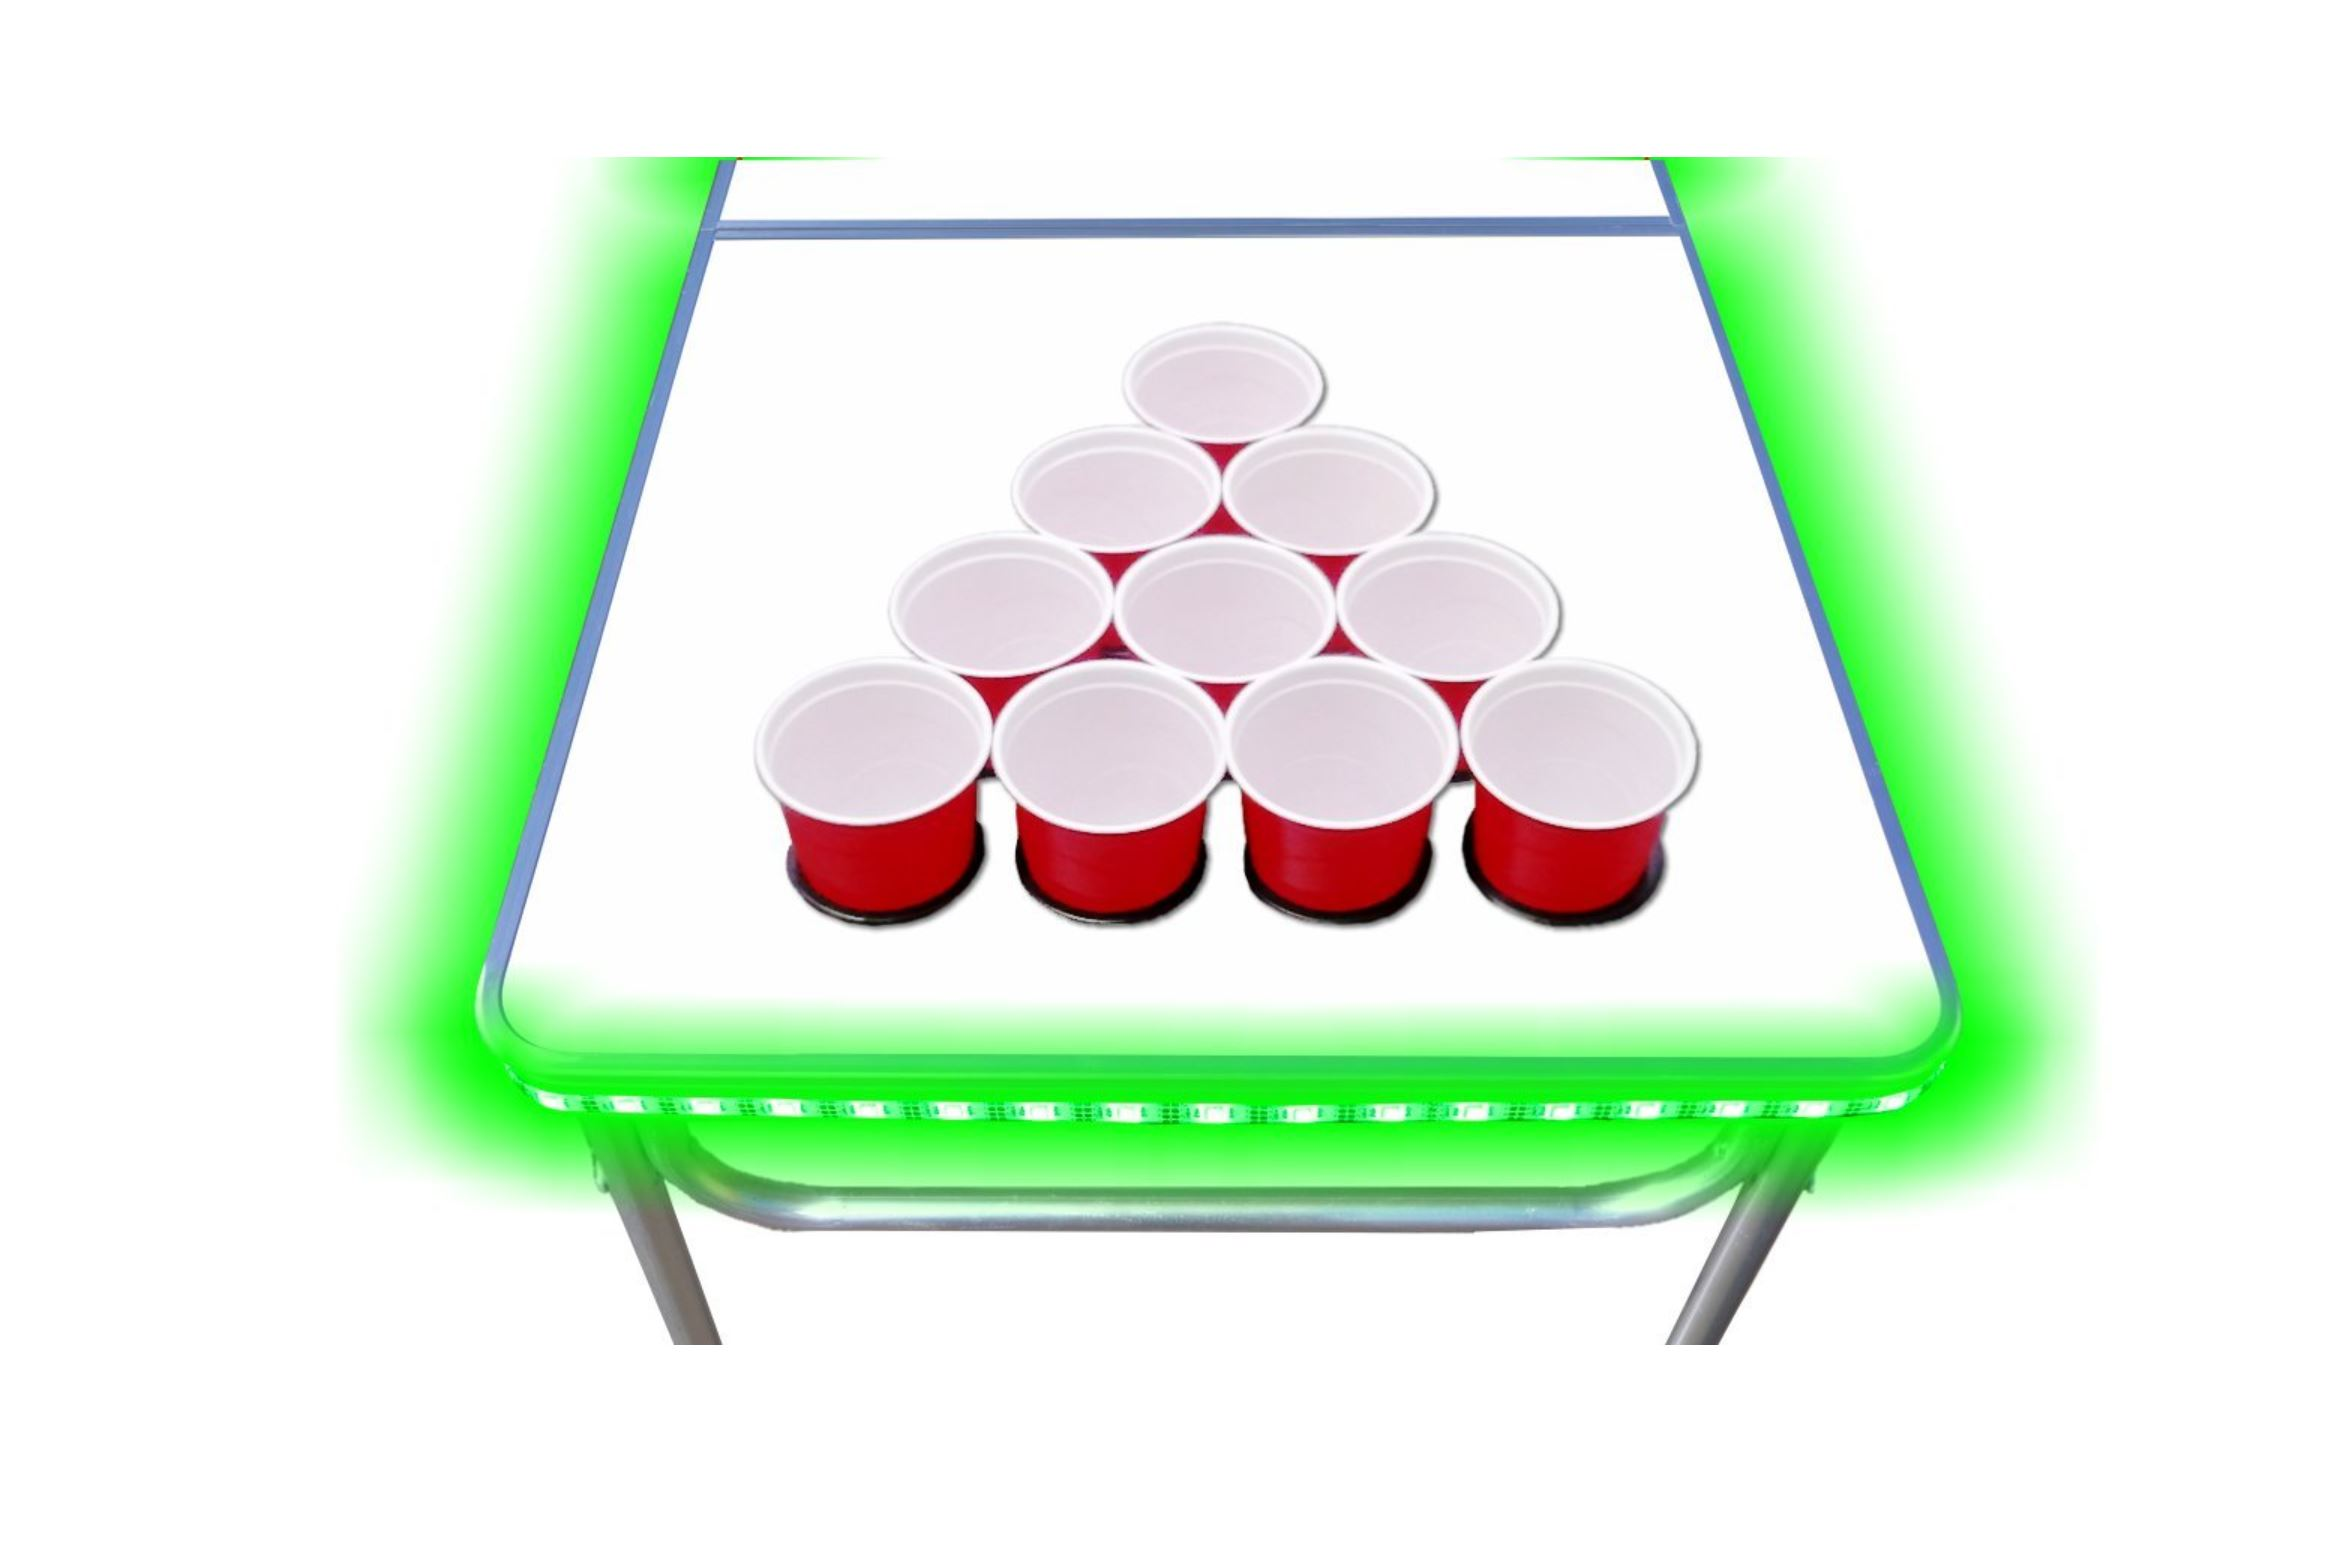 LED - Dry Eras Beer Pong Table - Party Rentals in South Florida - Miami, FL 786-423-8759